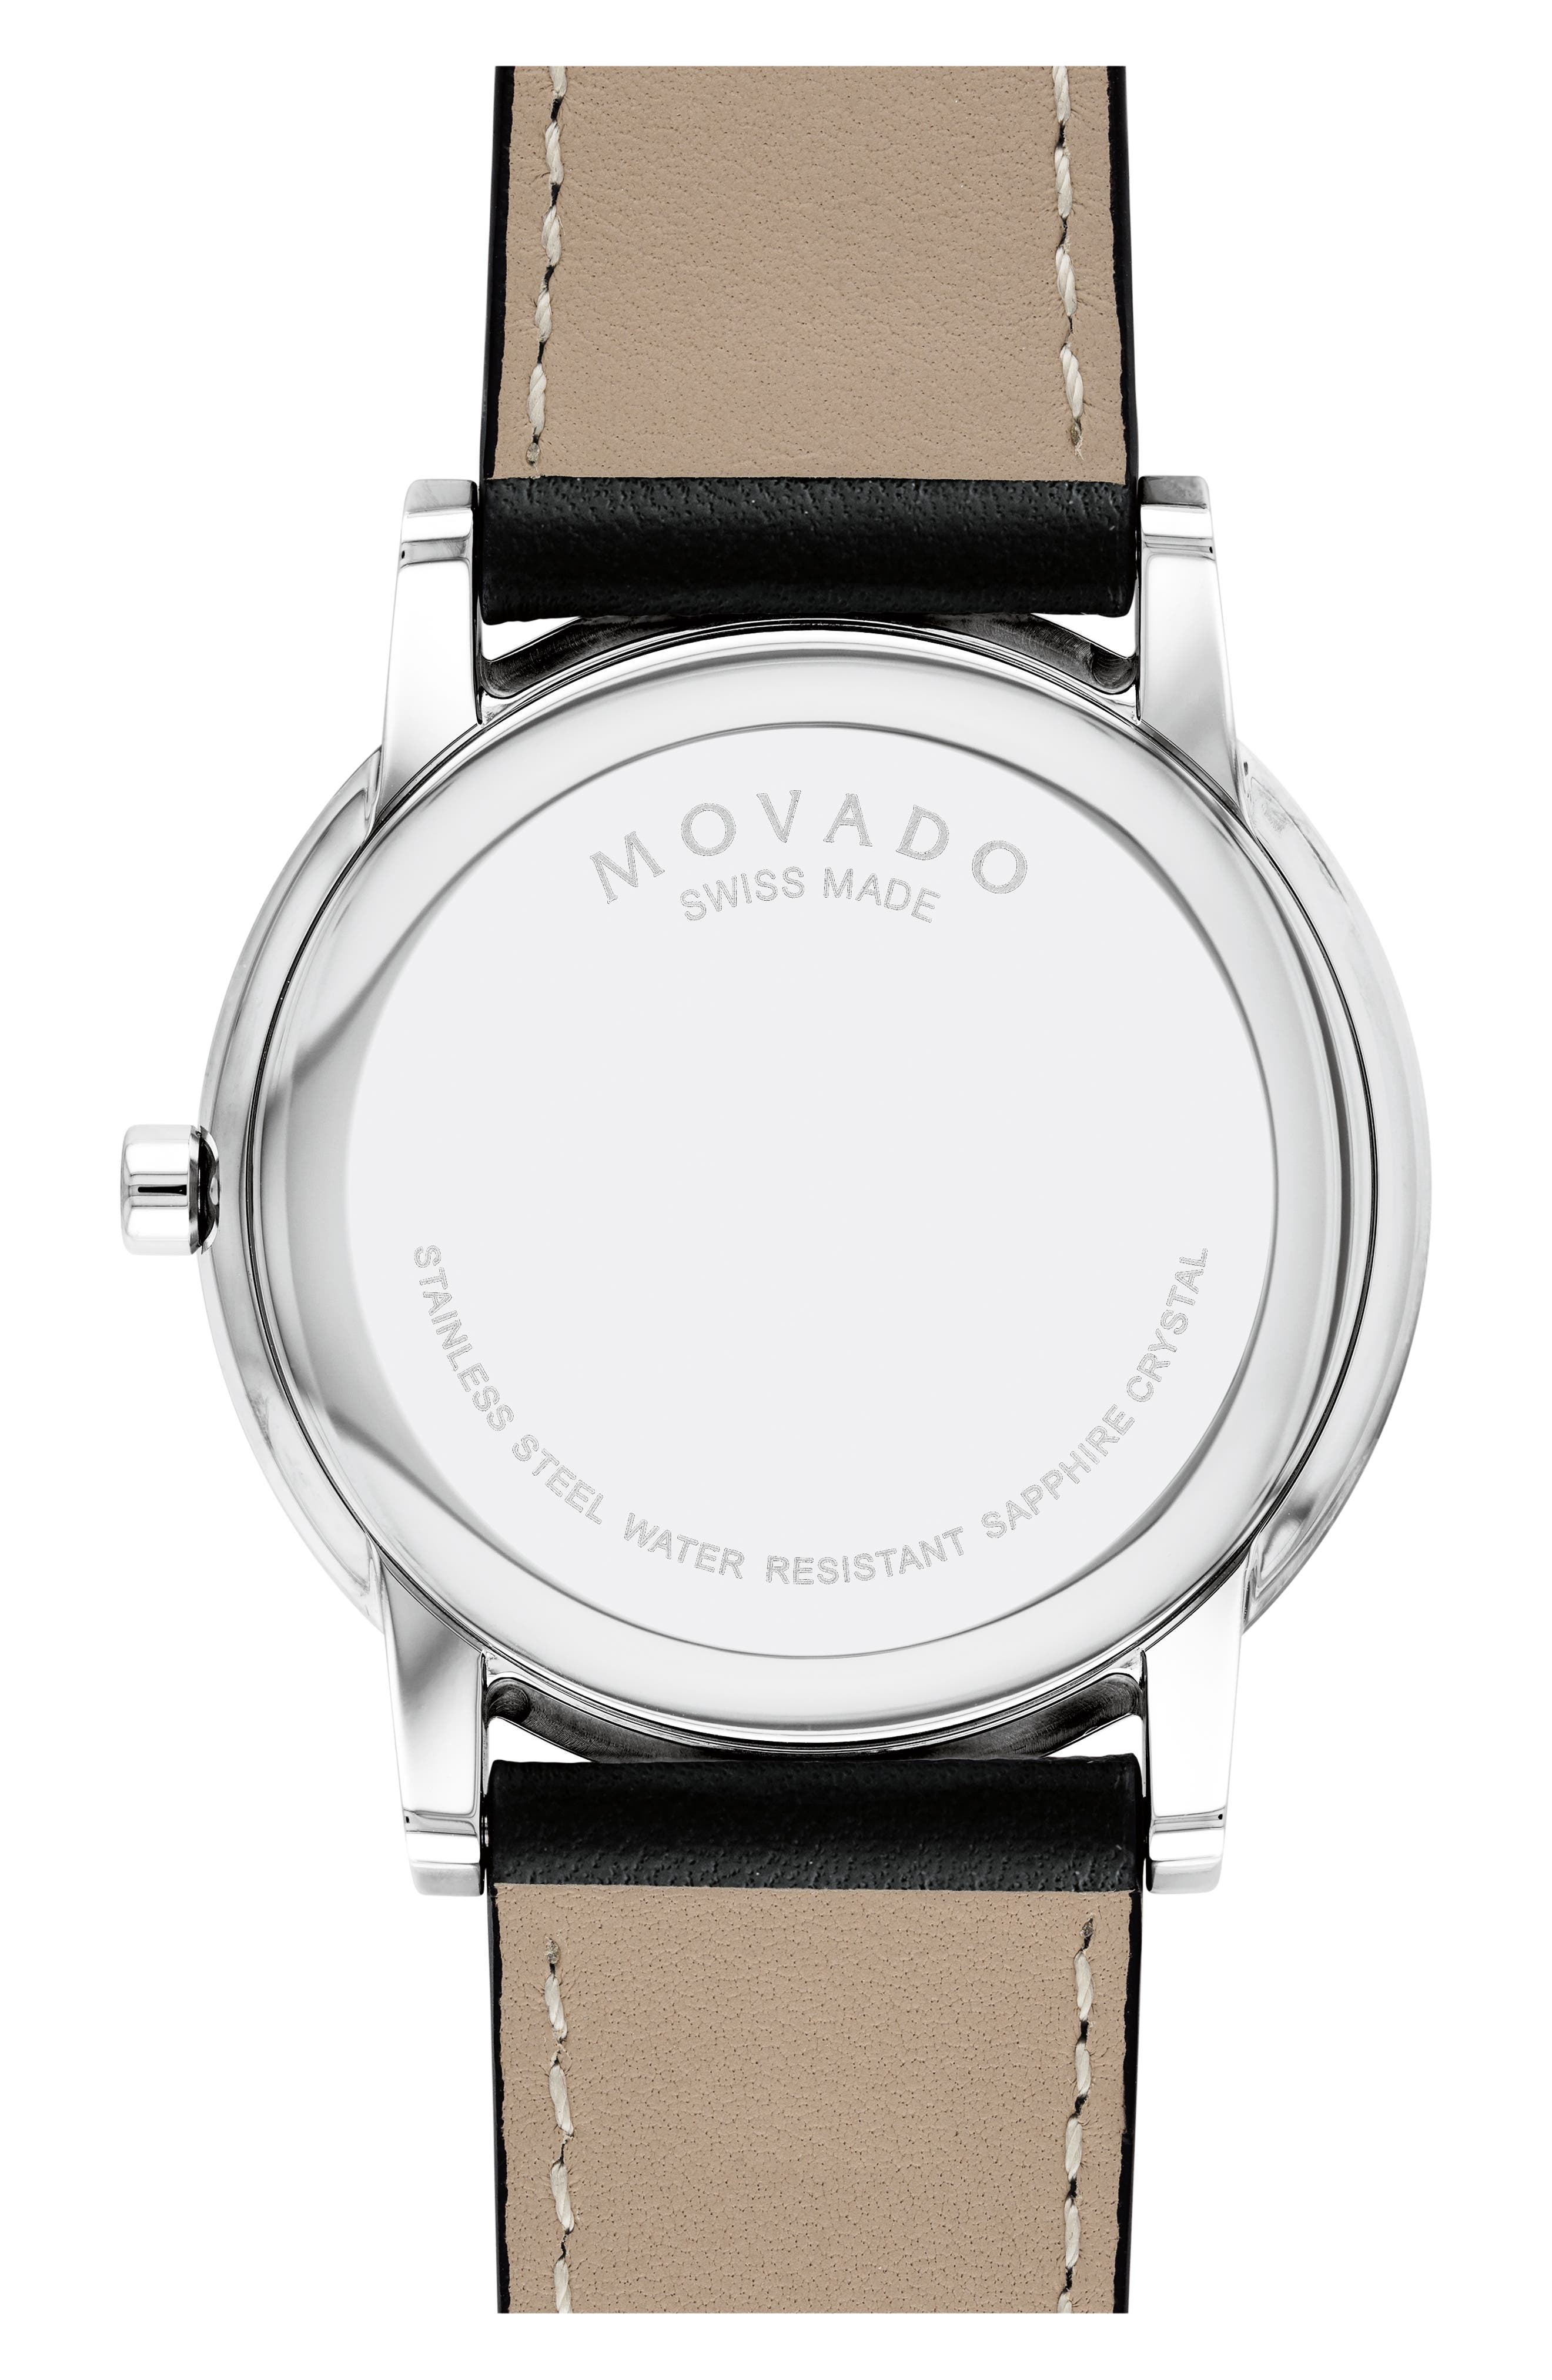 MOVADO, Leather Strap Watch, 40mm, Alternate thumbnail 3, color, BLACK/ SILVER